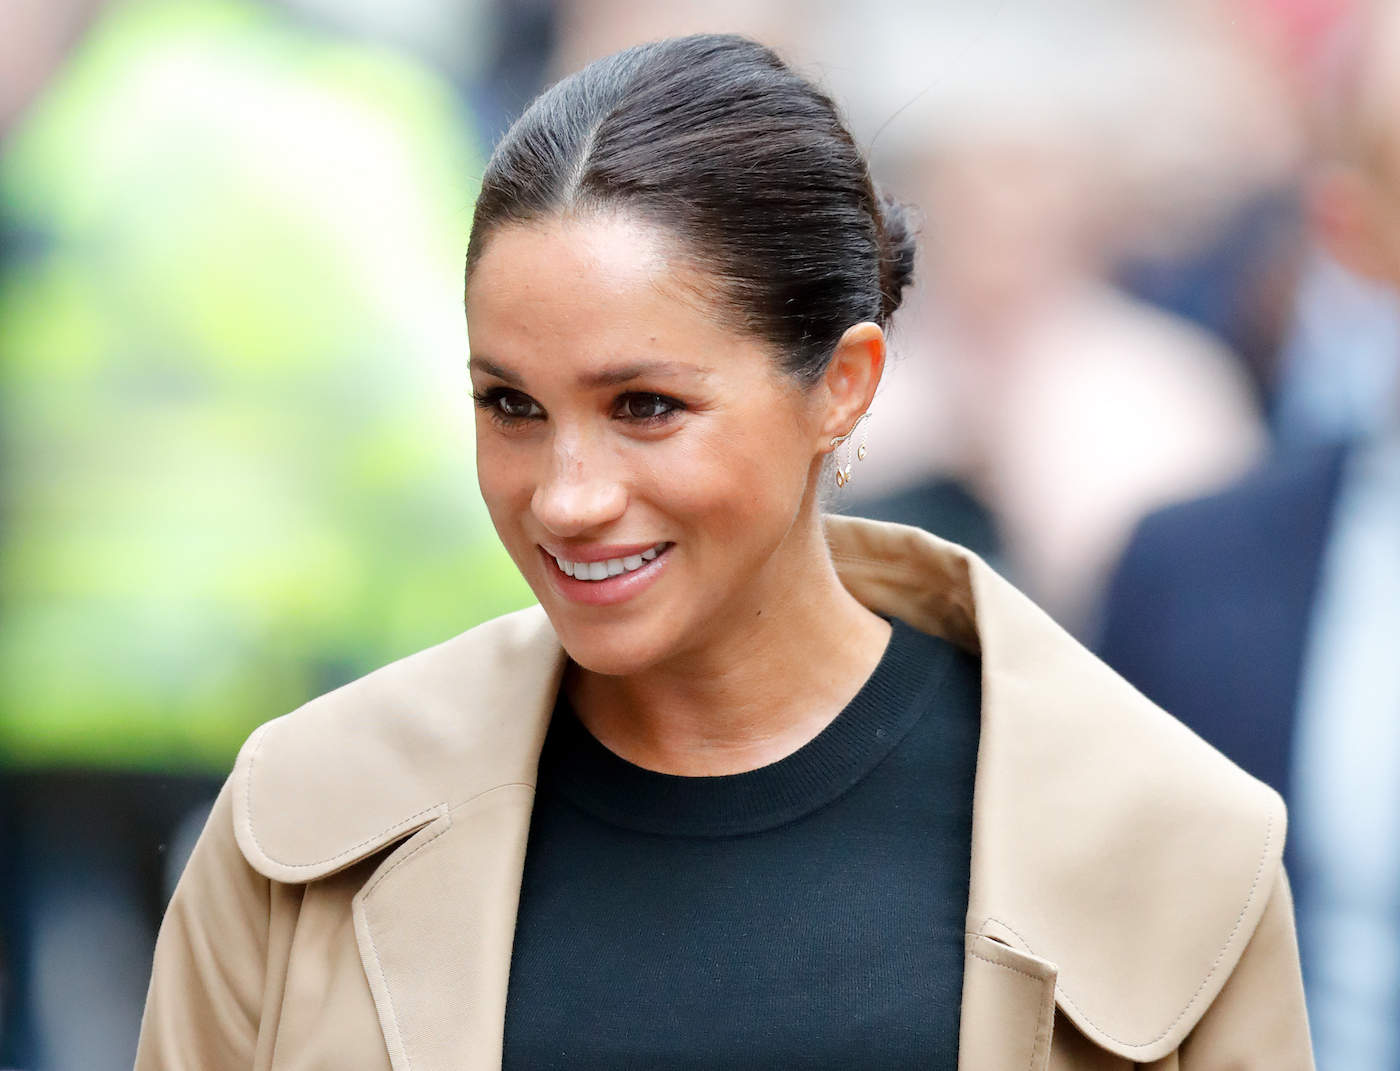 Meghan Markle Wears First Maternity Dress During Pregnancy